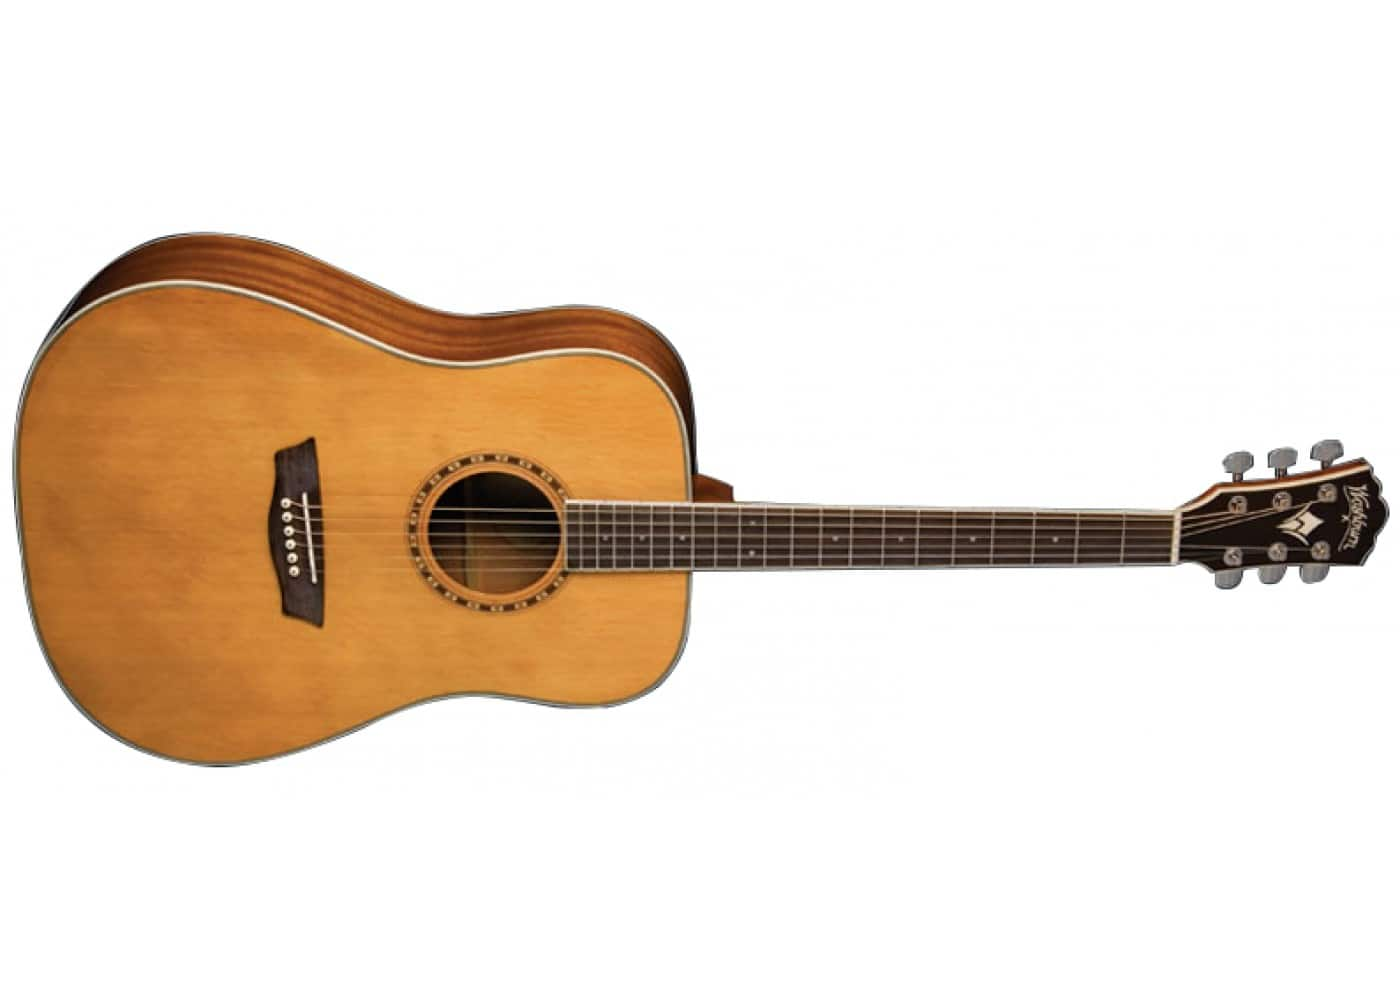 Washburn WD11S Dreadnought Solid Cedar Top Acoustic Guitar  $180 + Free Shipping